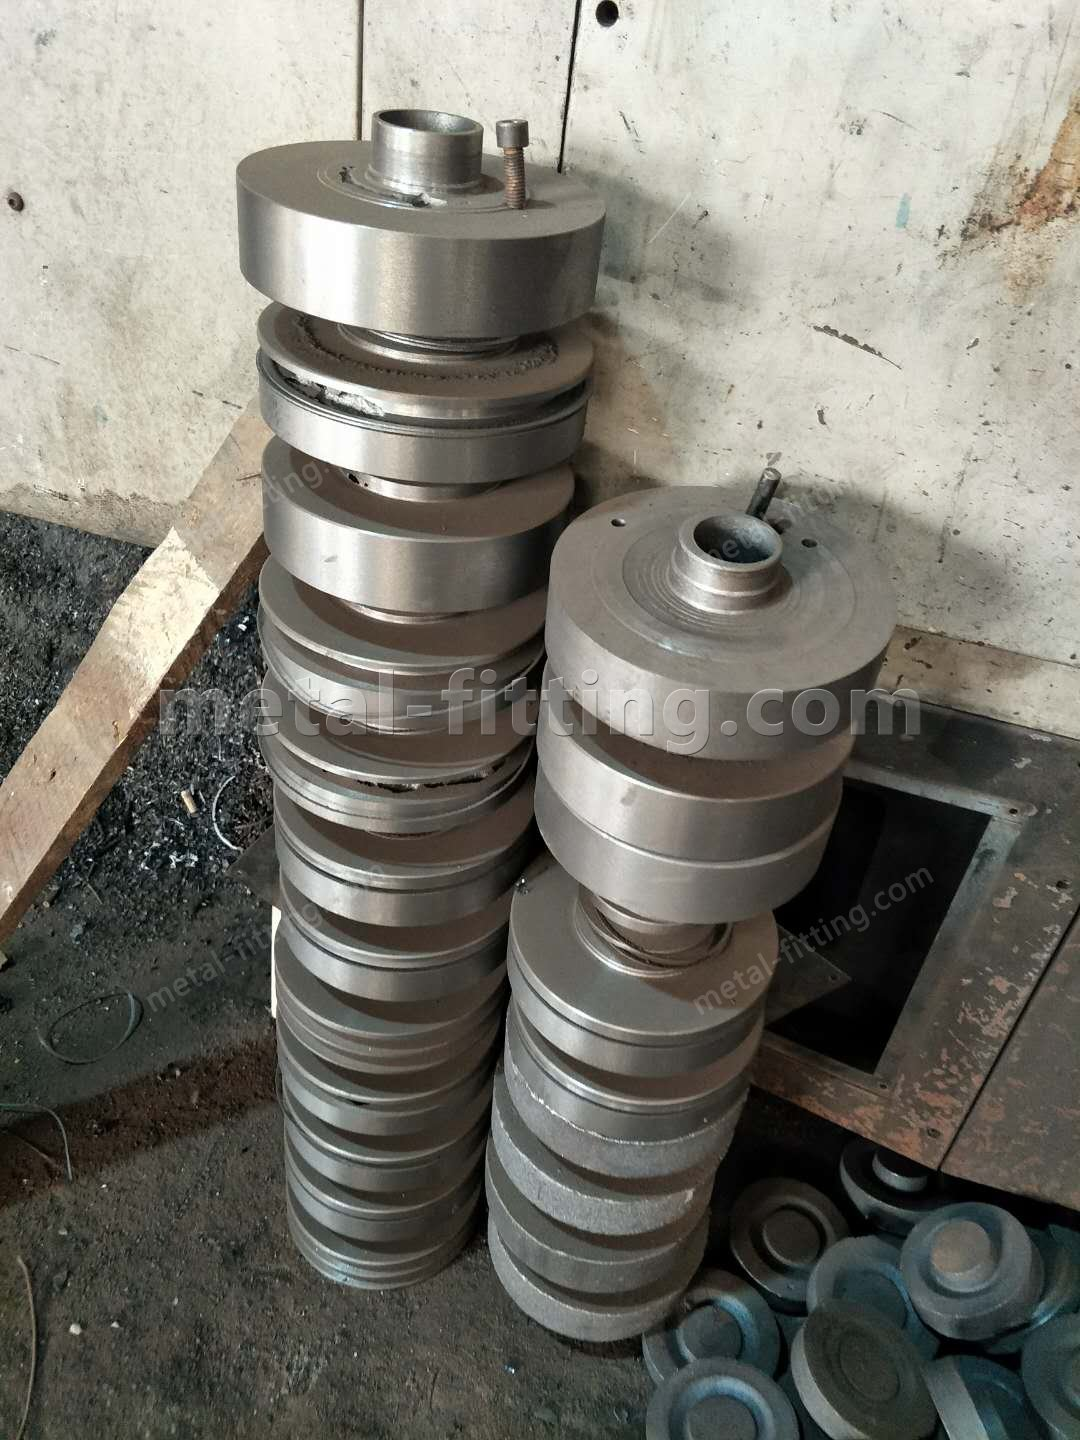 cast iron pully,pully,Steel Casted Gear Ring,-21883331711373062